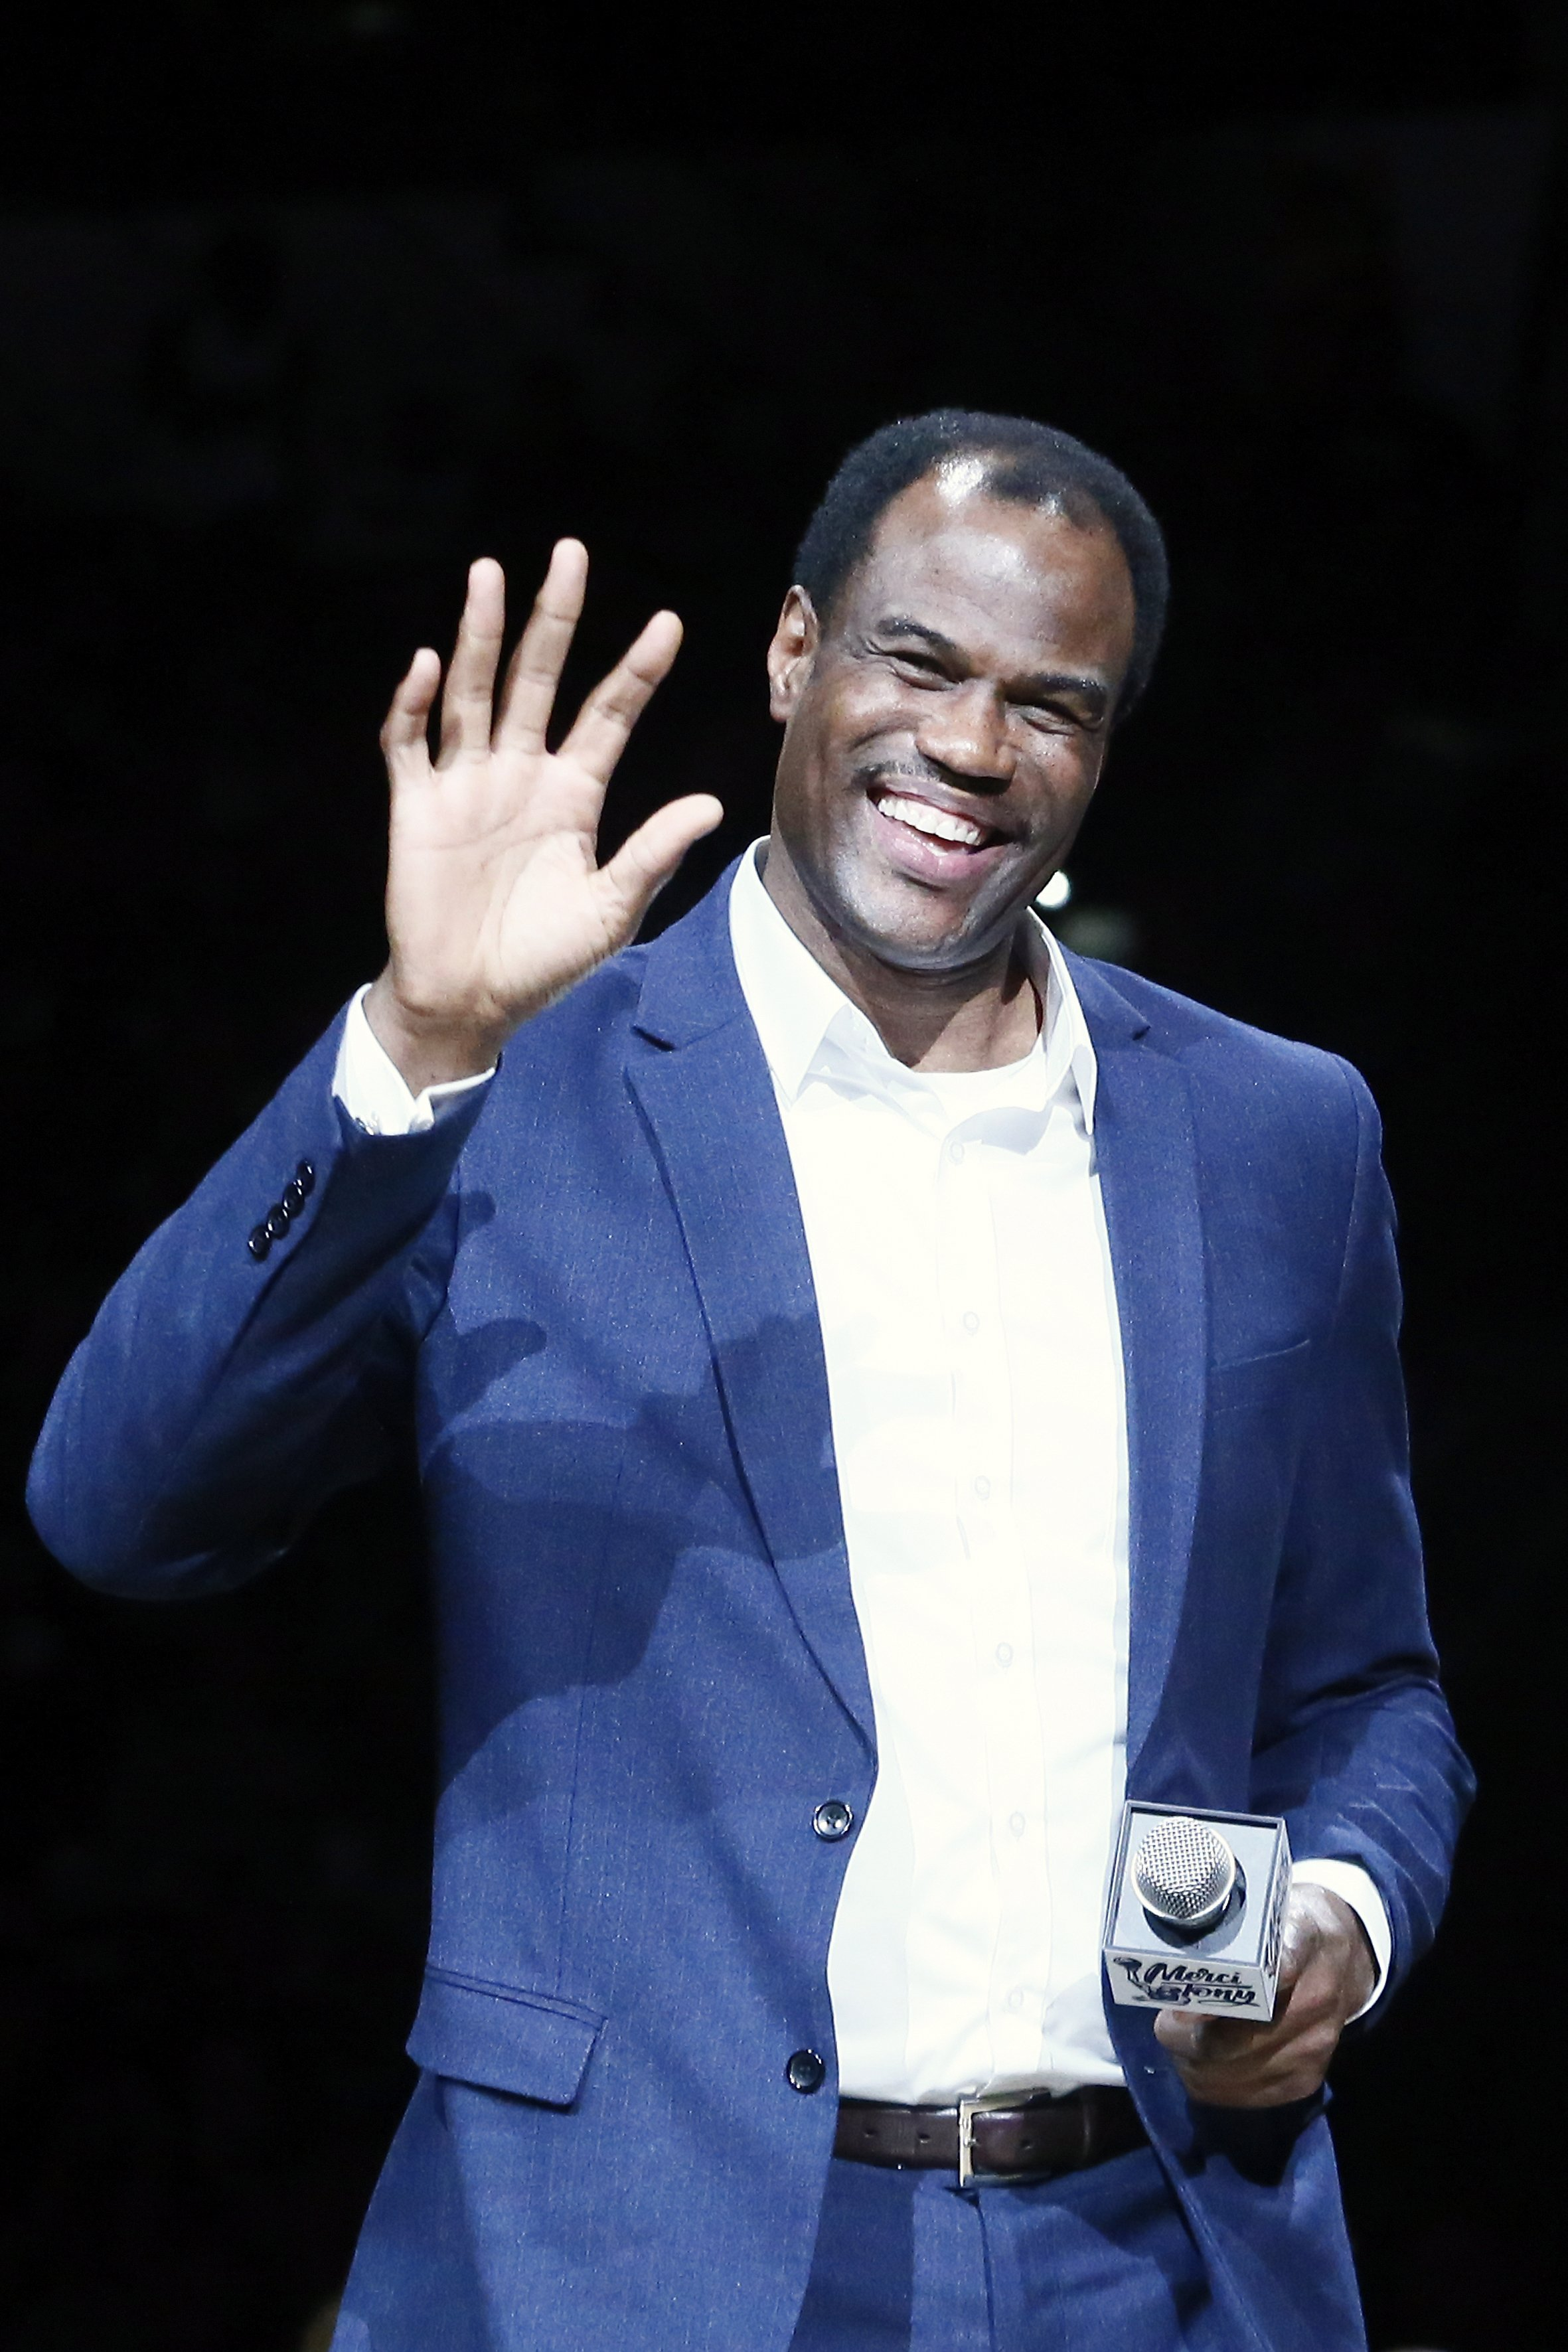 David Robinson, speaks during the Tony Parker jersey retirement ceremony prior to a game between the Memphis Grizzlies and the San Antonio Spurs on November 11, 2019 | Photo: Getty Images